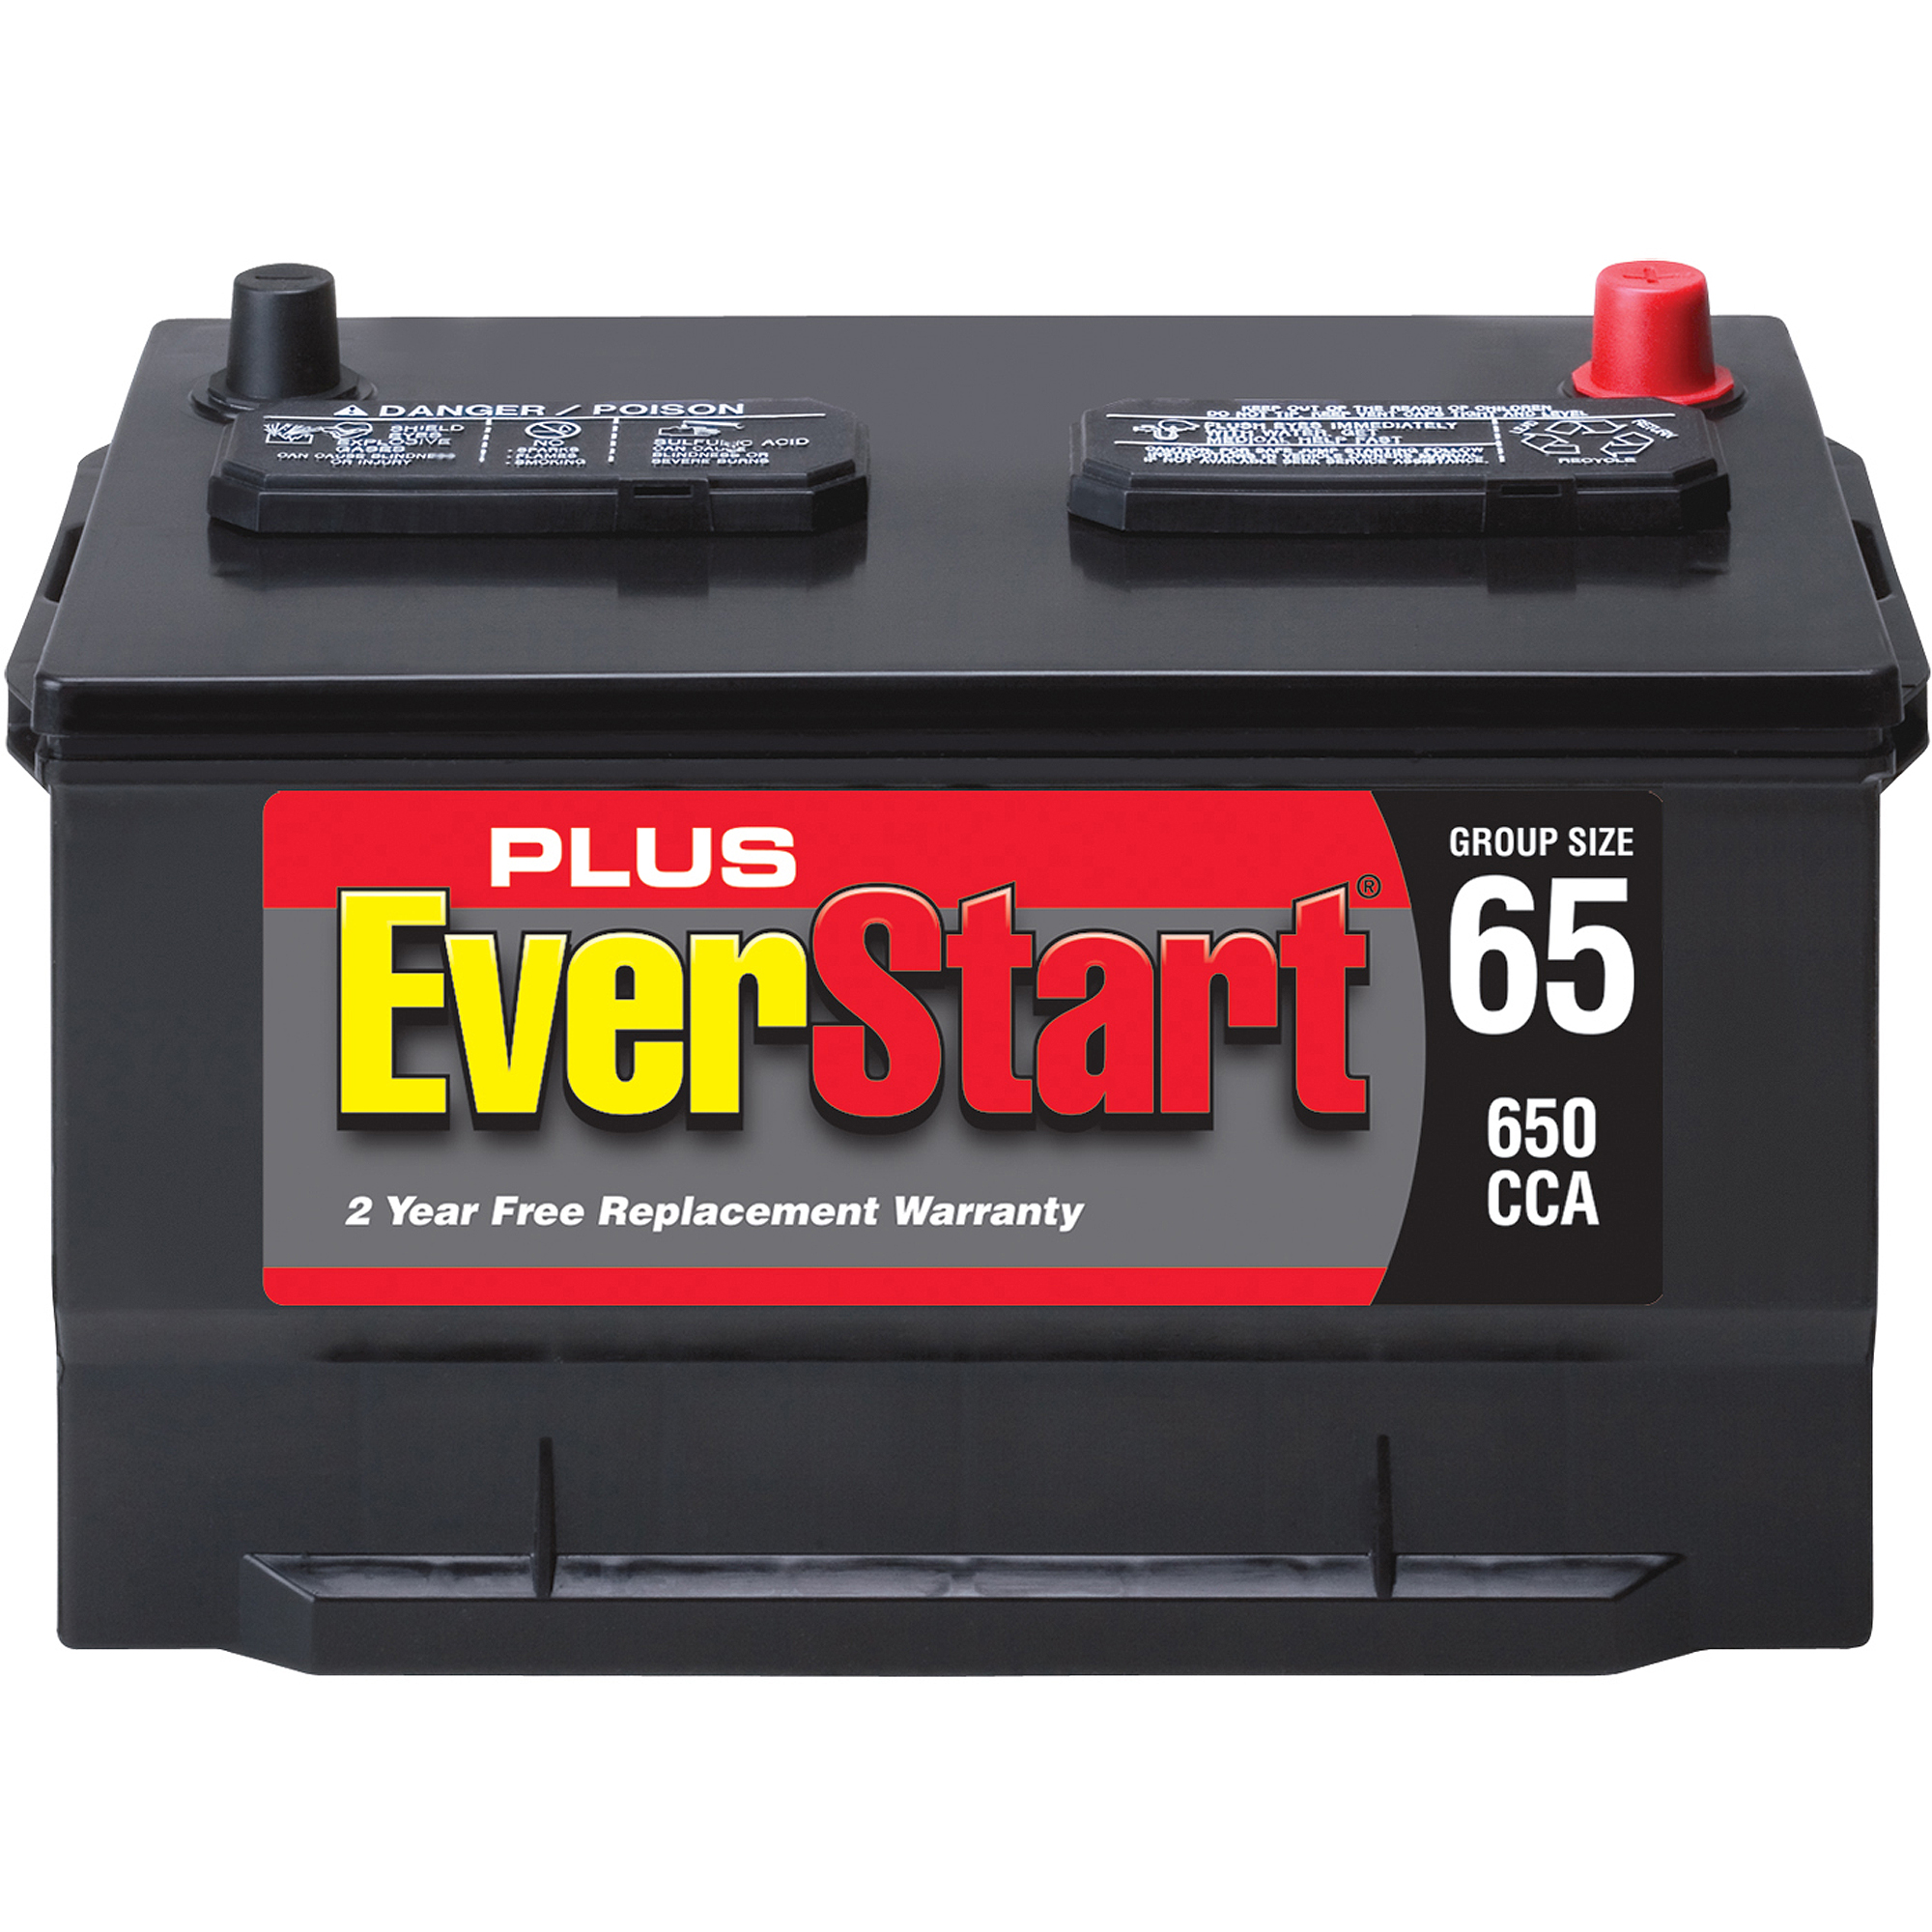 EverStart Plus Lead Acid Automotive Battery, Group 65